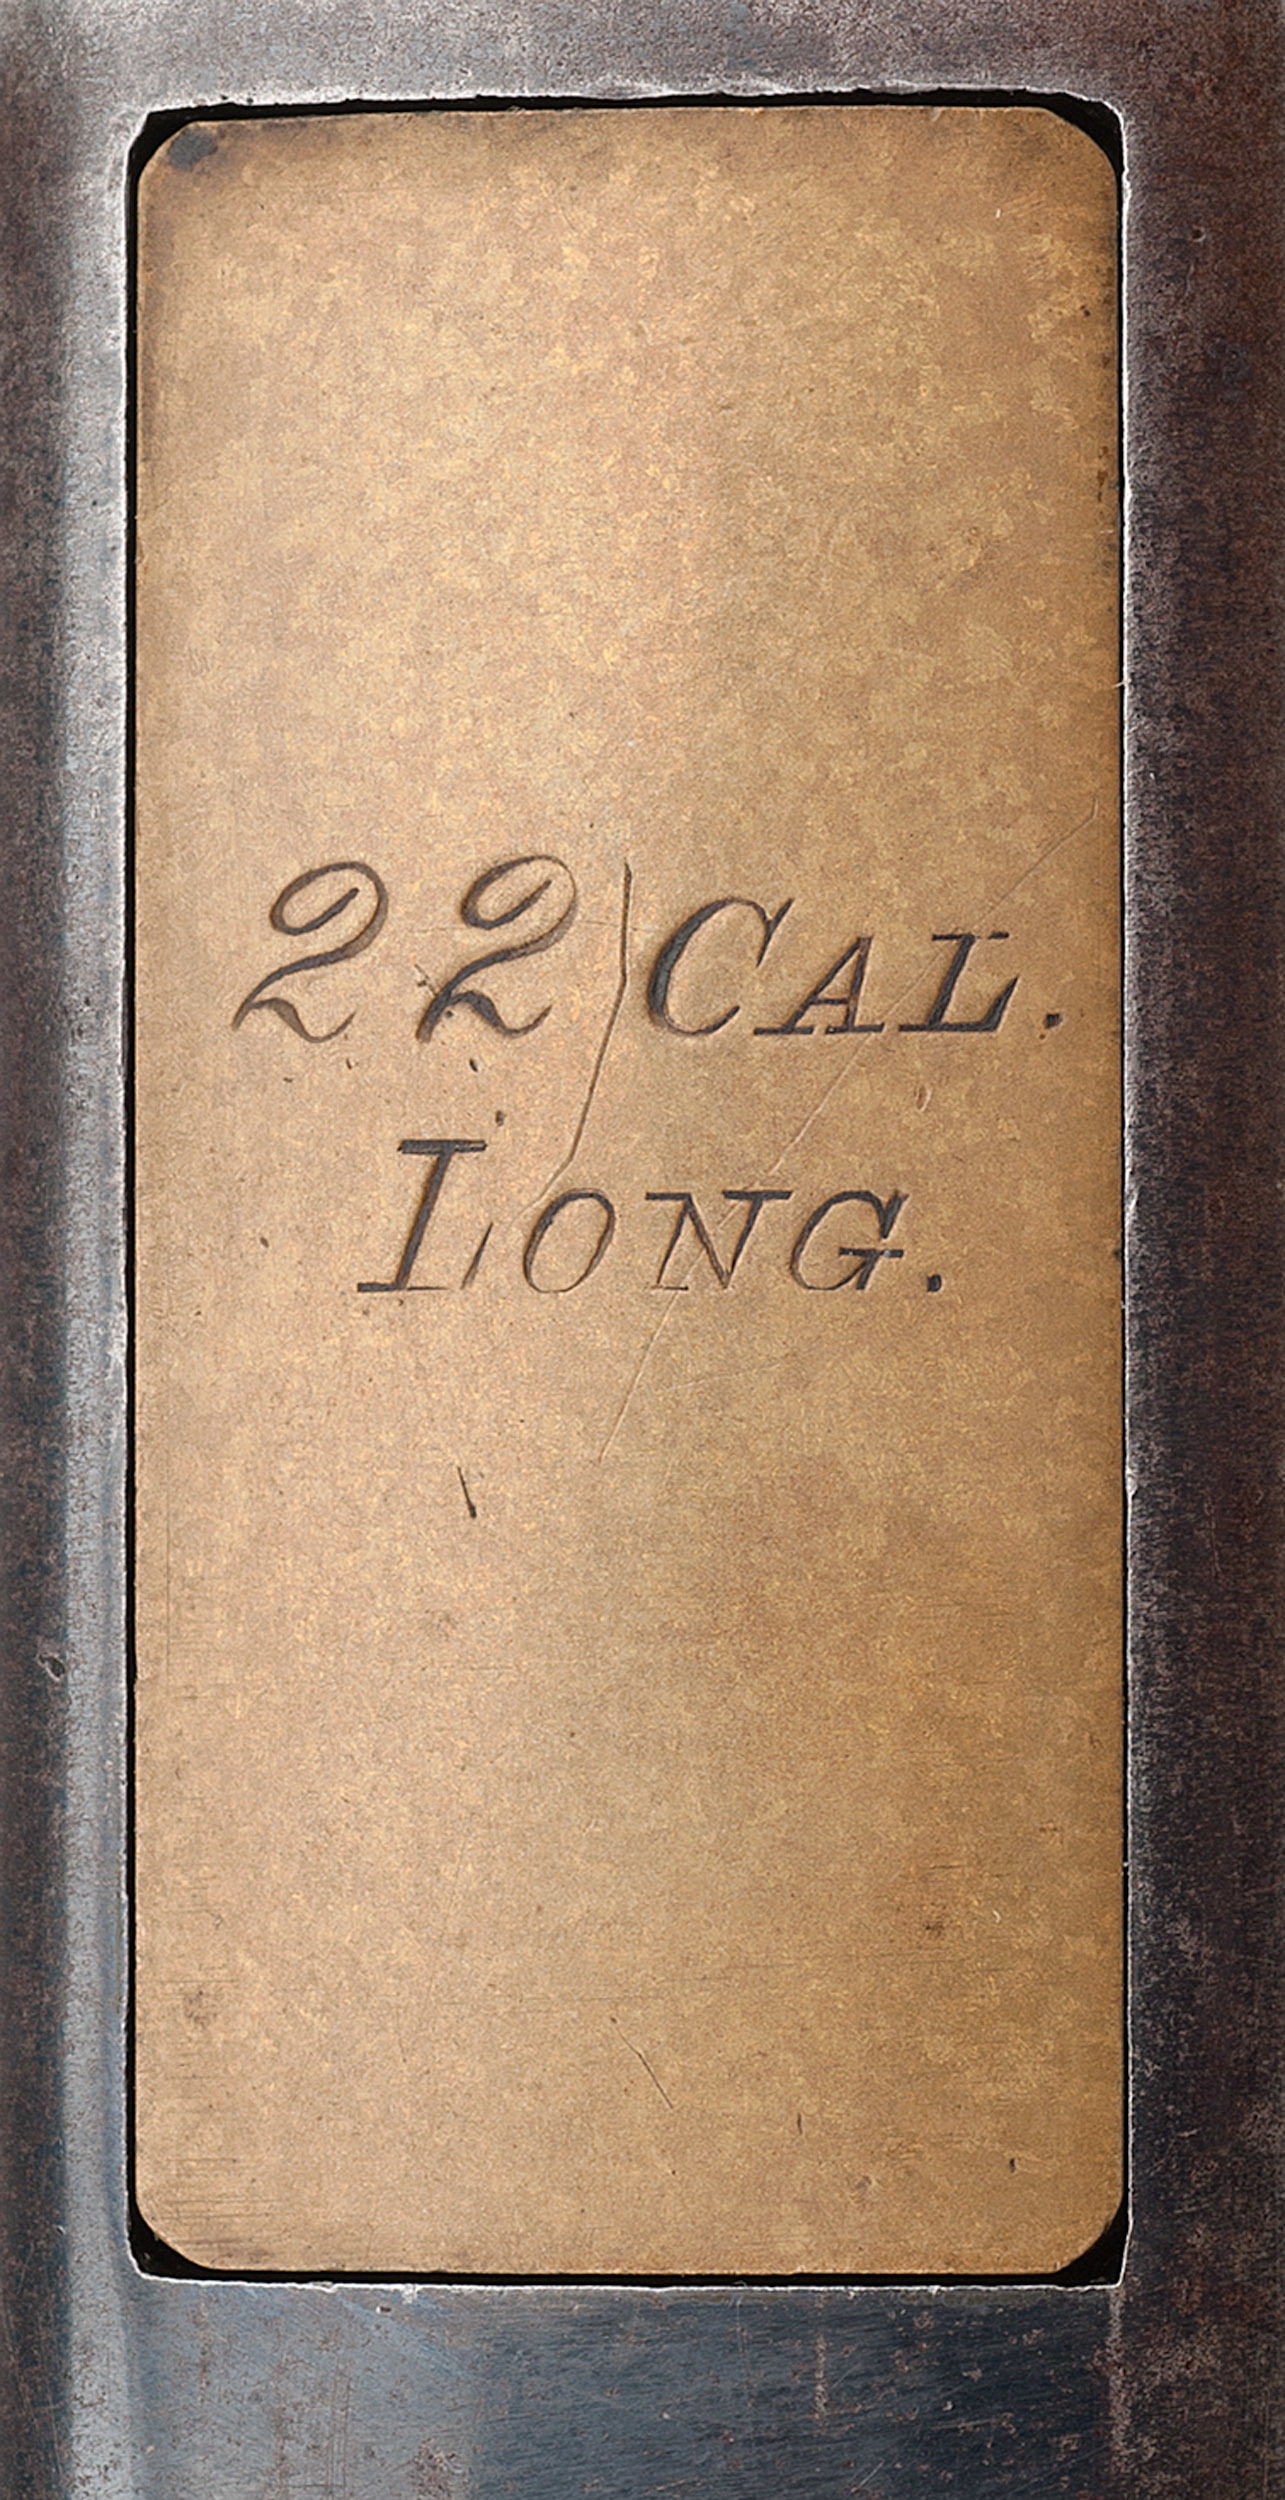 Winchester Model 1873 .22 Rifle | Cowan's Auction House: The ...